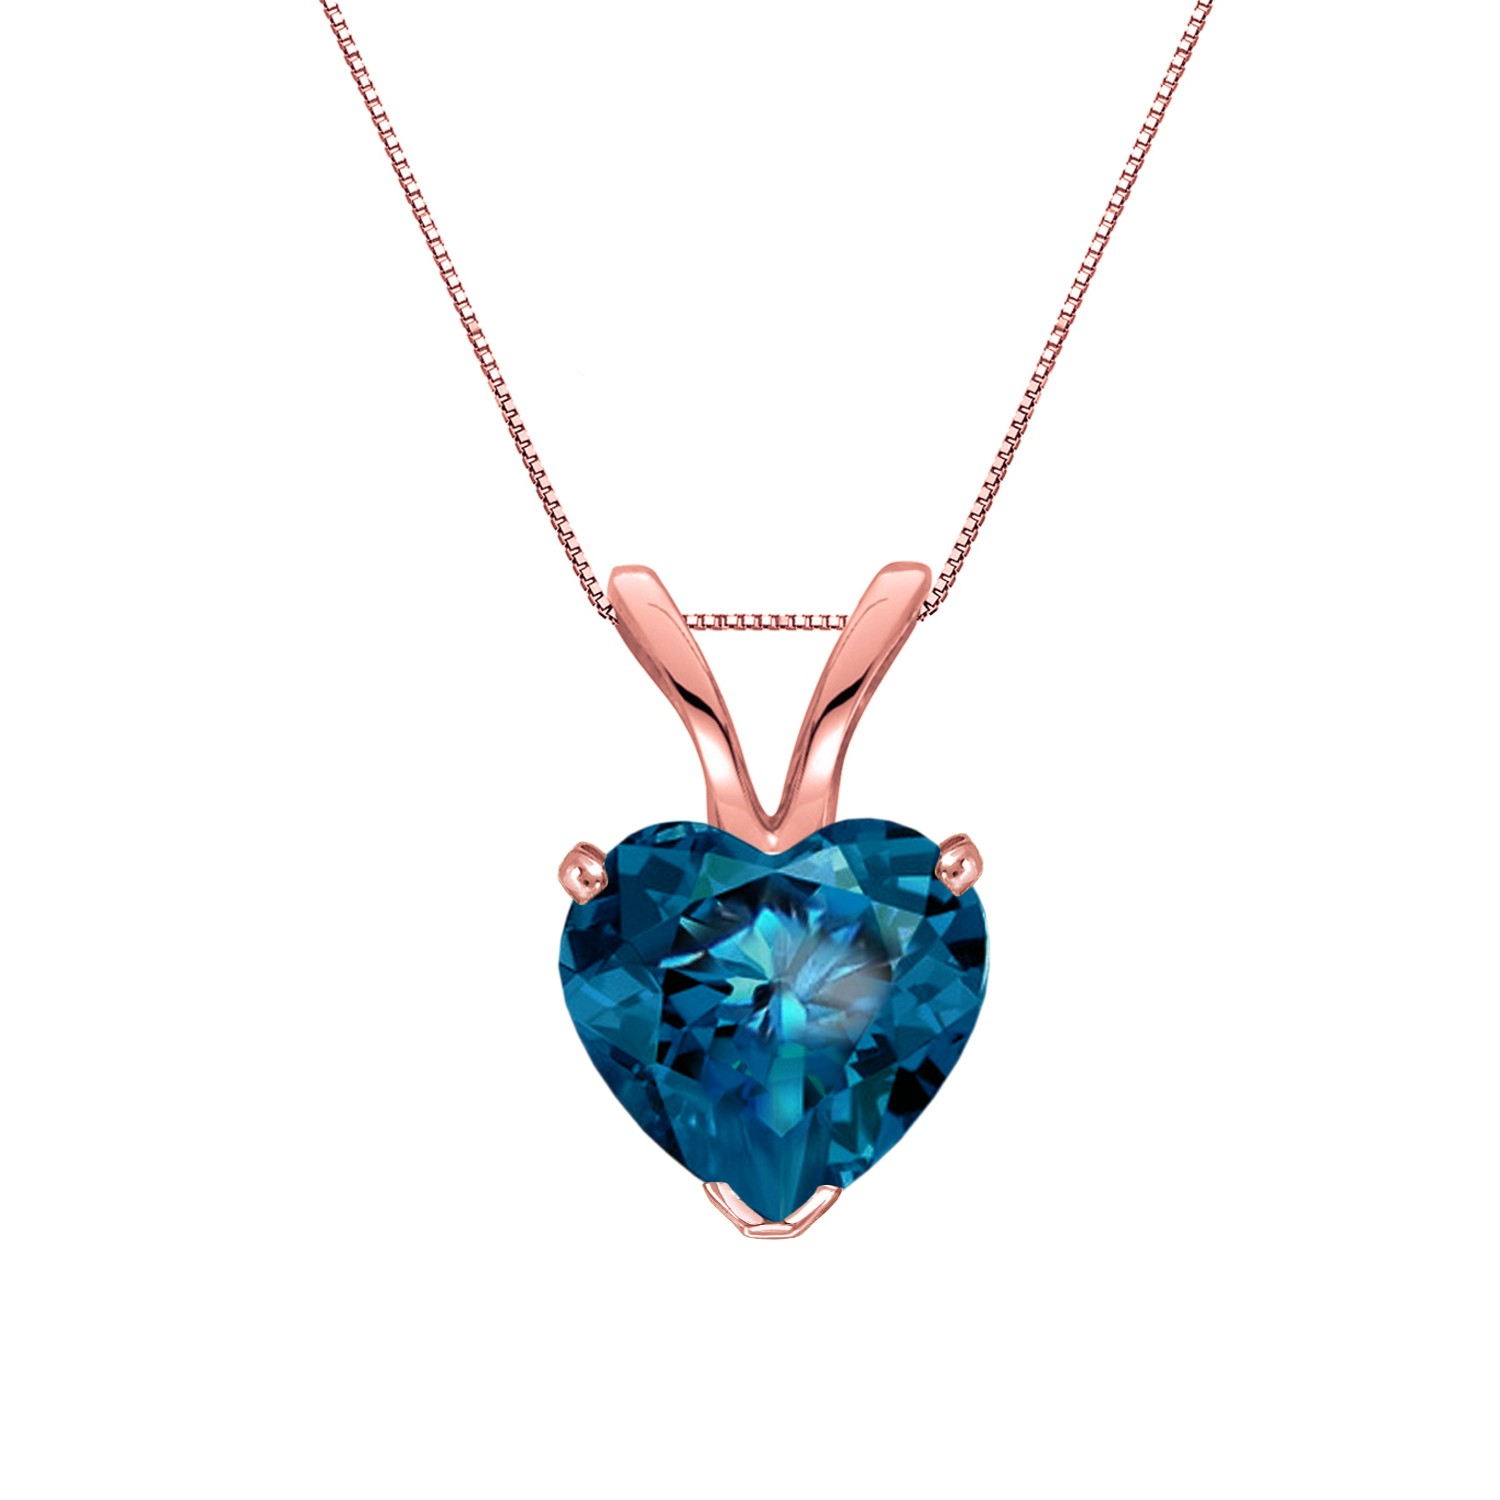 Certified 14k Rose Gold Heart Shape Blue Diamond Solitaire Pendant 1.00 ct. tw. (Blue, SI1-SI2)